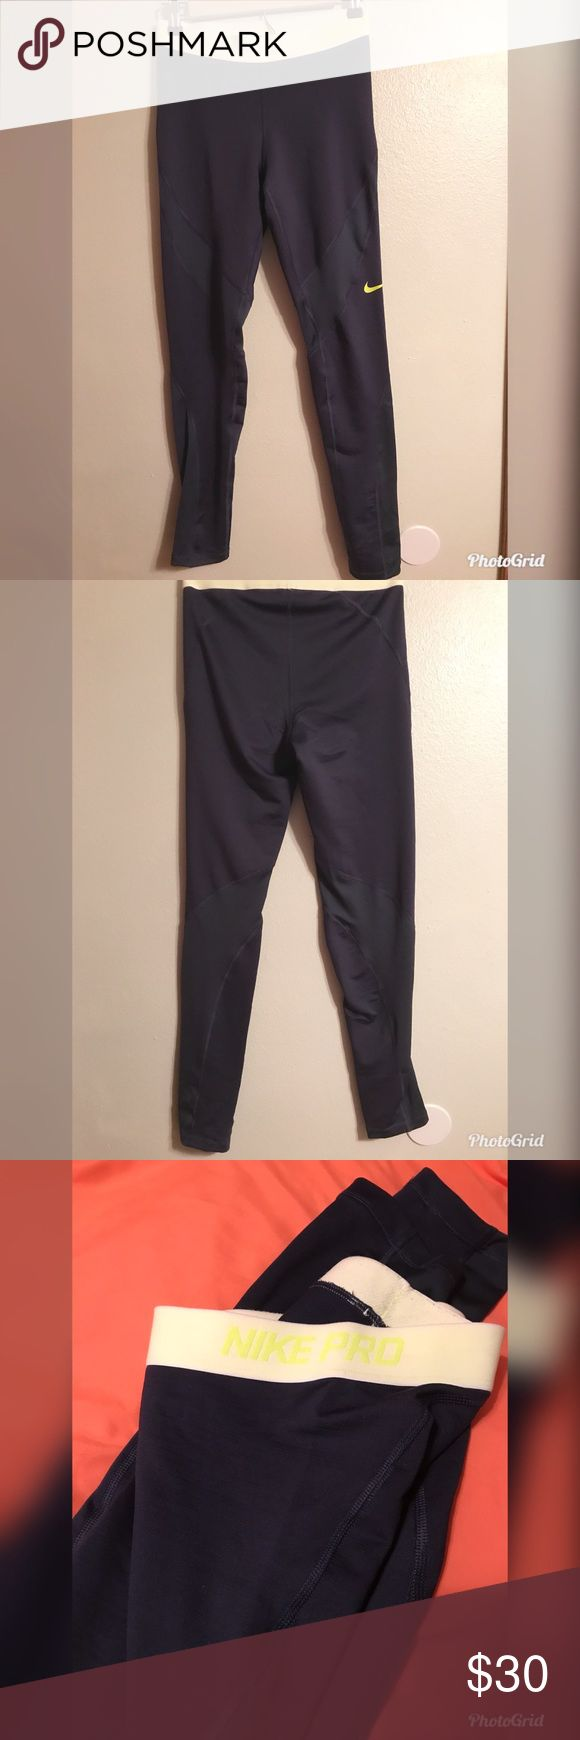 Nike pro pants Navy blue and neon  Soft on the inside like fleece Full pants to the ankle Nike Pants Leggings